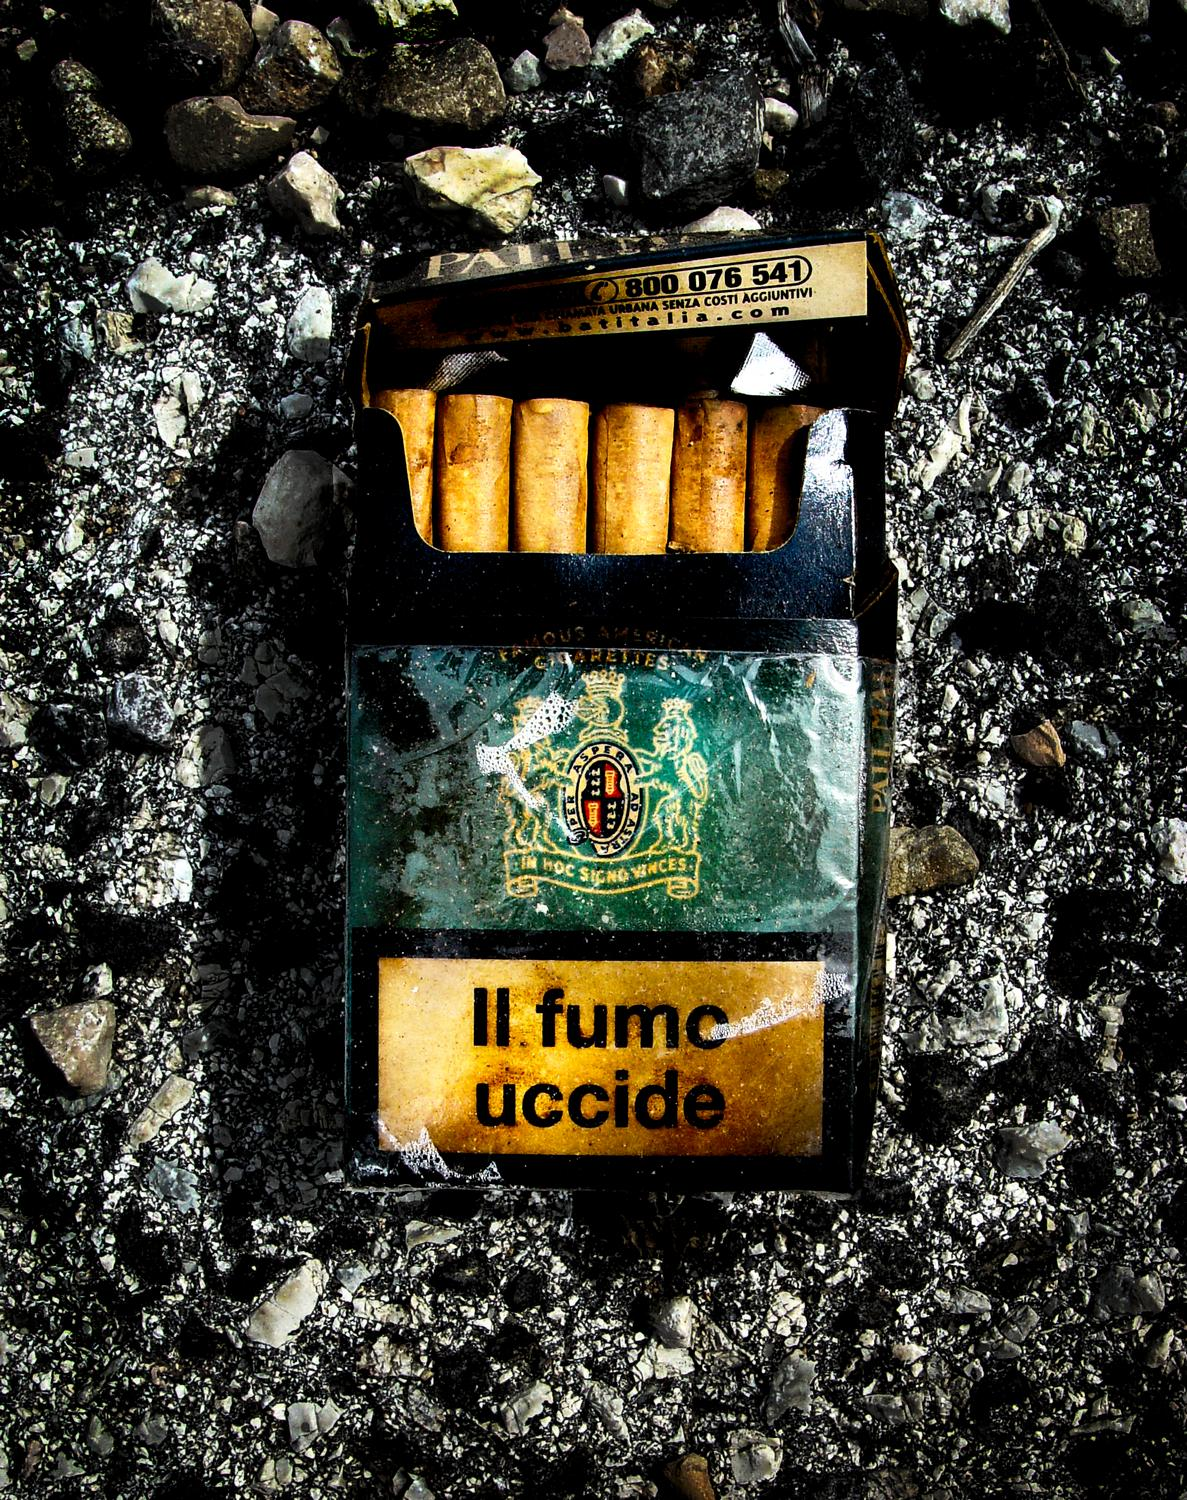 - Along the road, I saw this discarded package of cigarettes. It says,